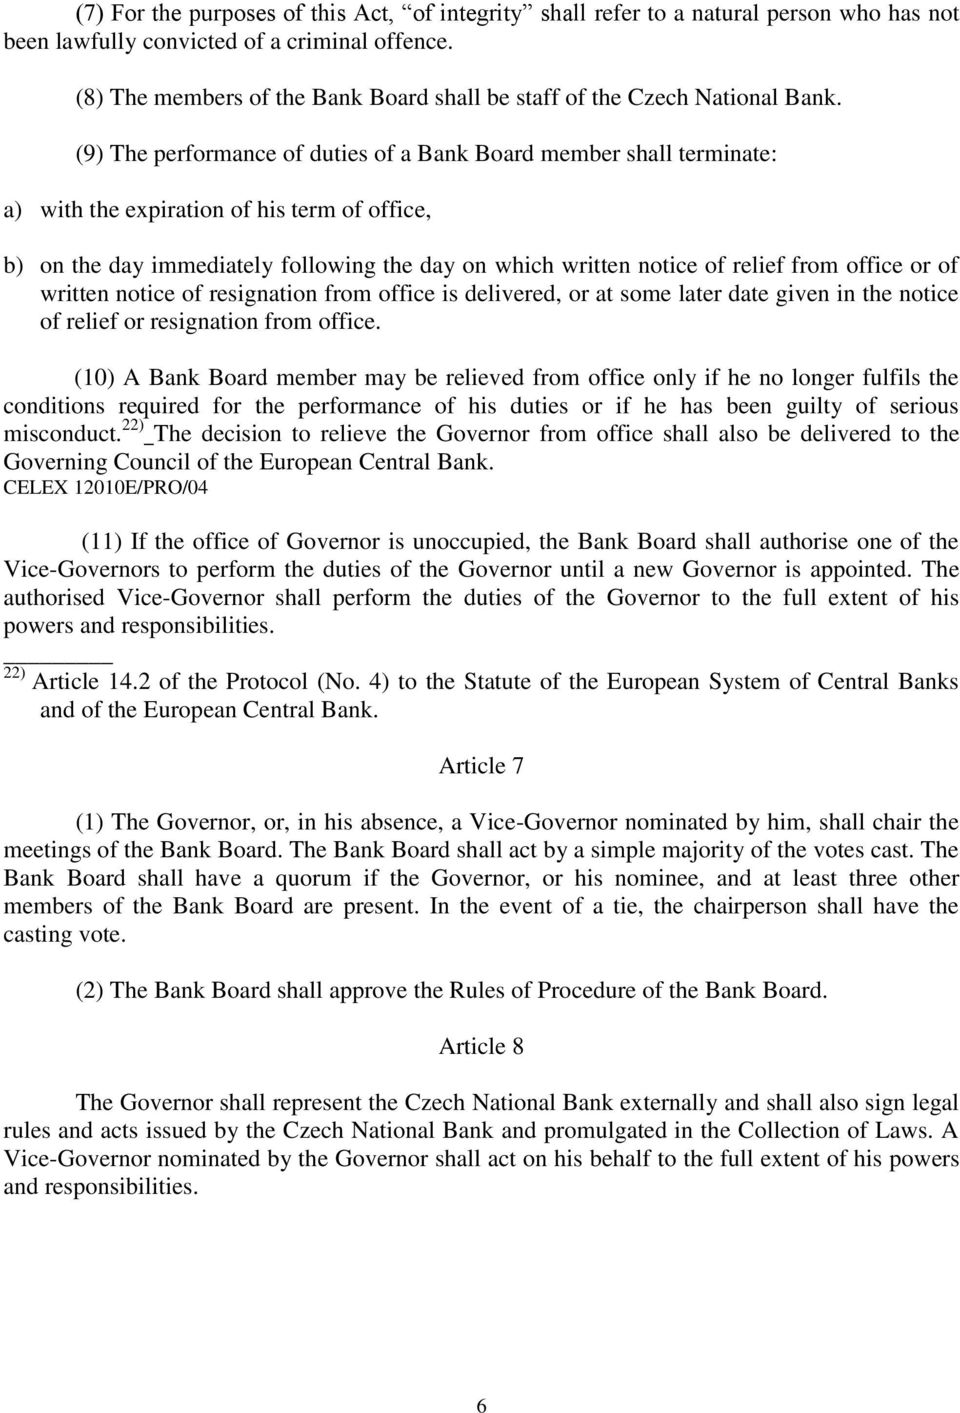 (9) The performance of duties of a Bank Board member shall terminate: a) with the expiration of his term of office, b) on the day immediately following the day on which written notice of relief from